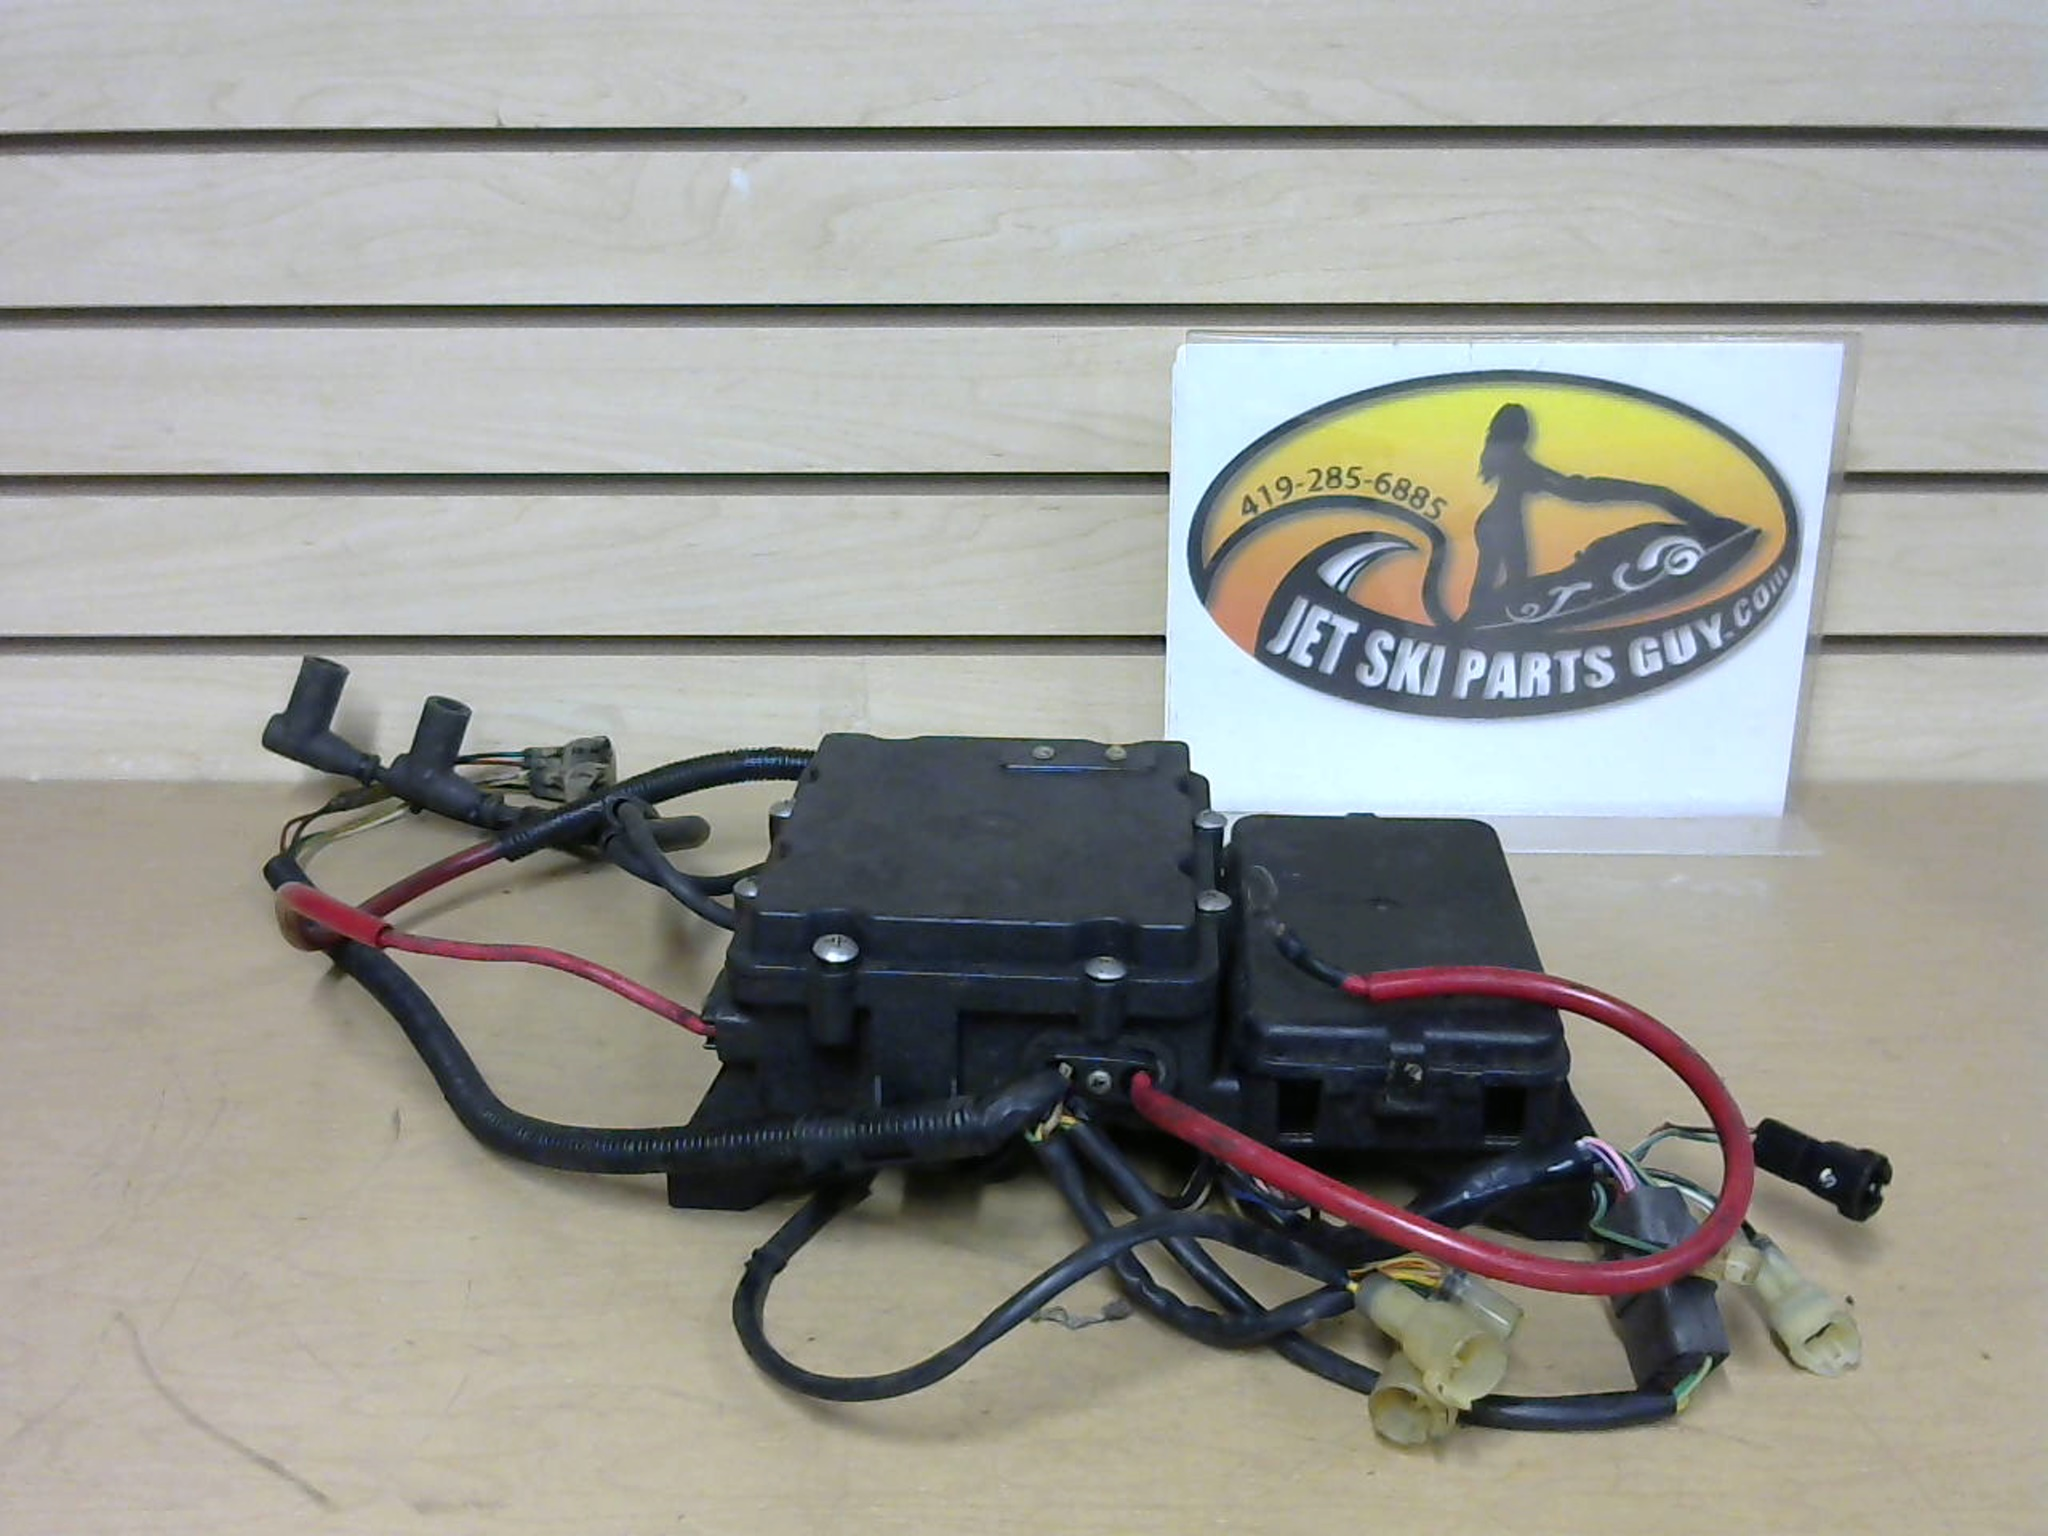 1997 Tigershark Monte Carlo 770 Tested OEM Electrical Box CDI Igniter Unit 3008-468 3008-279 3008-532